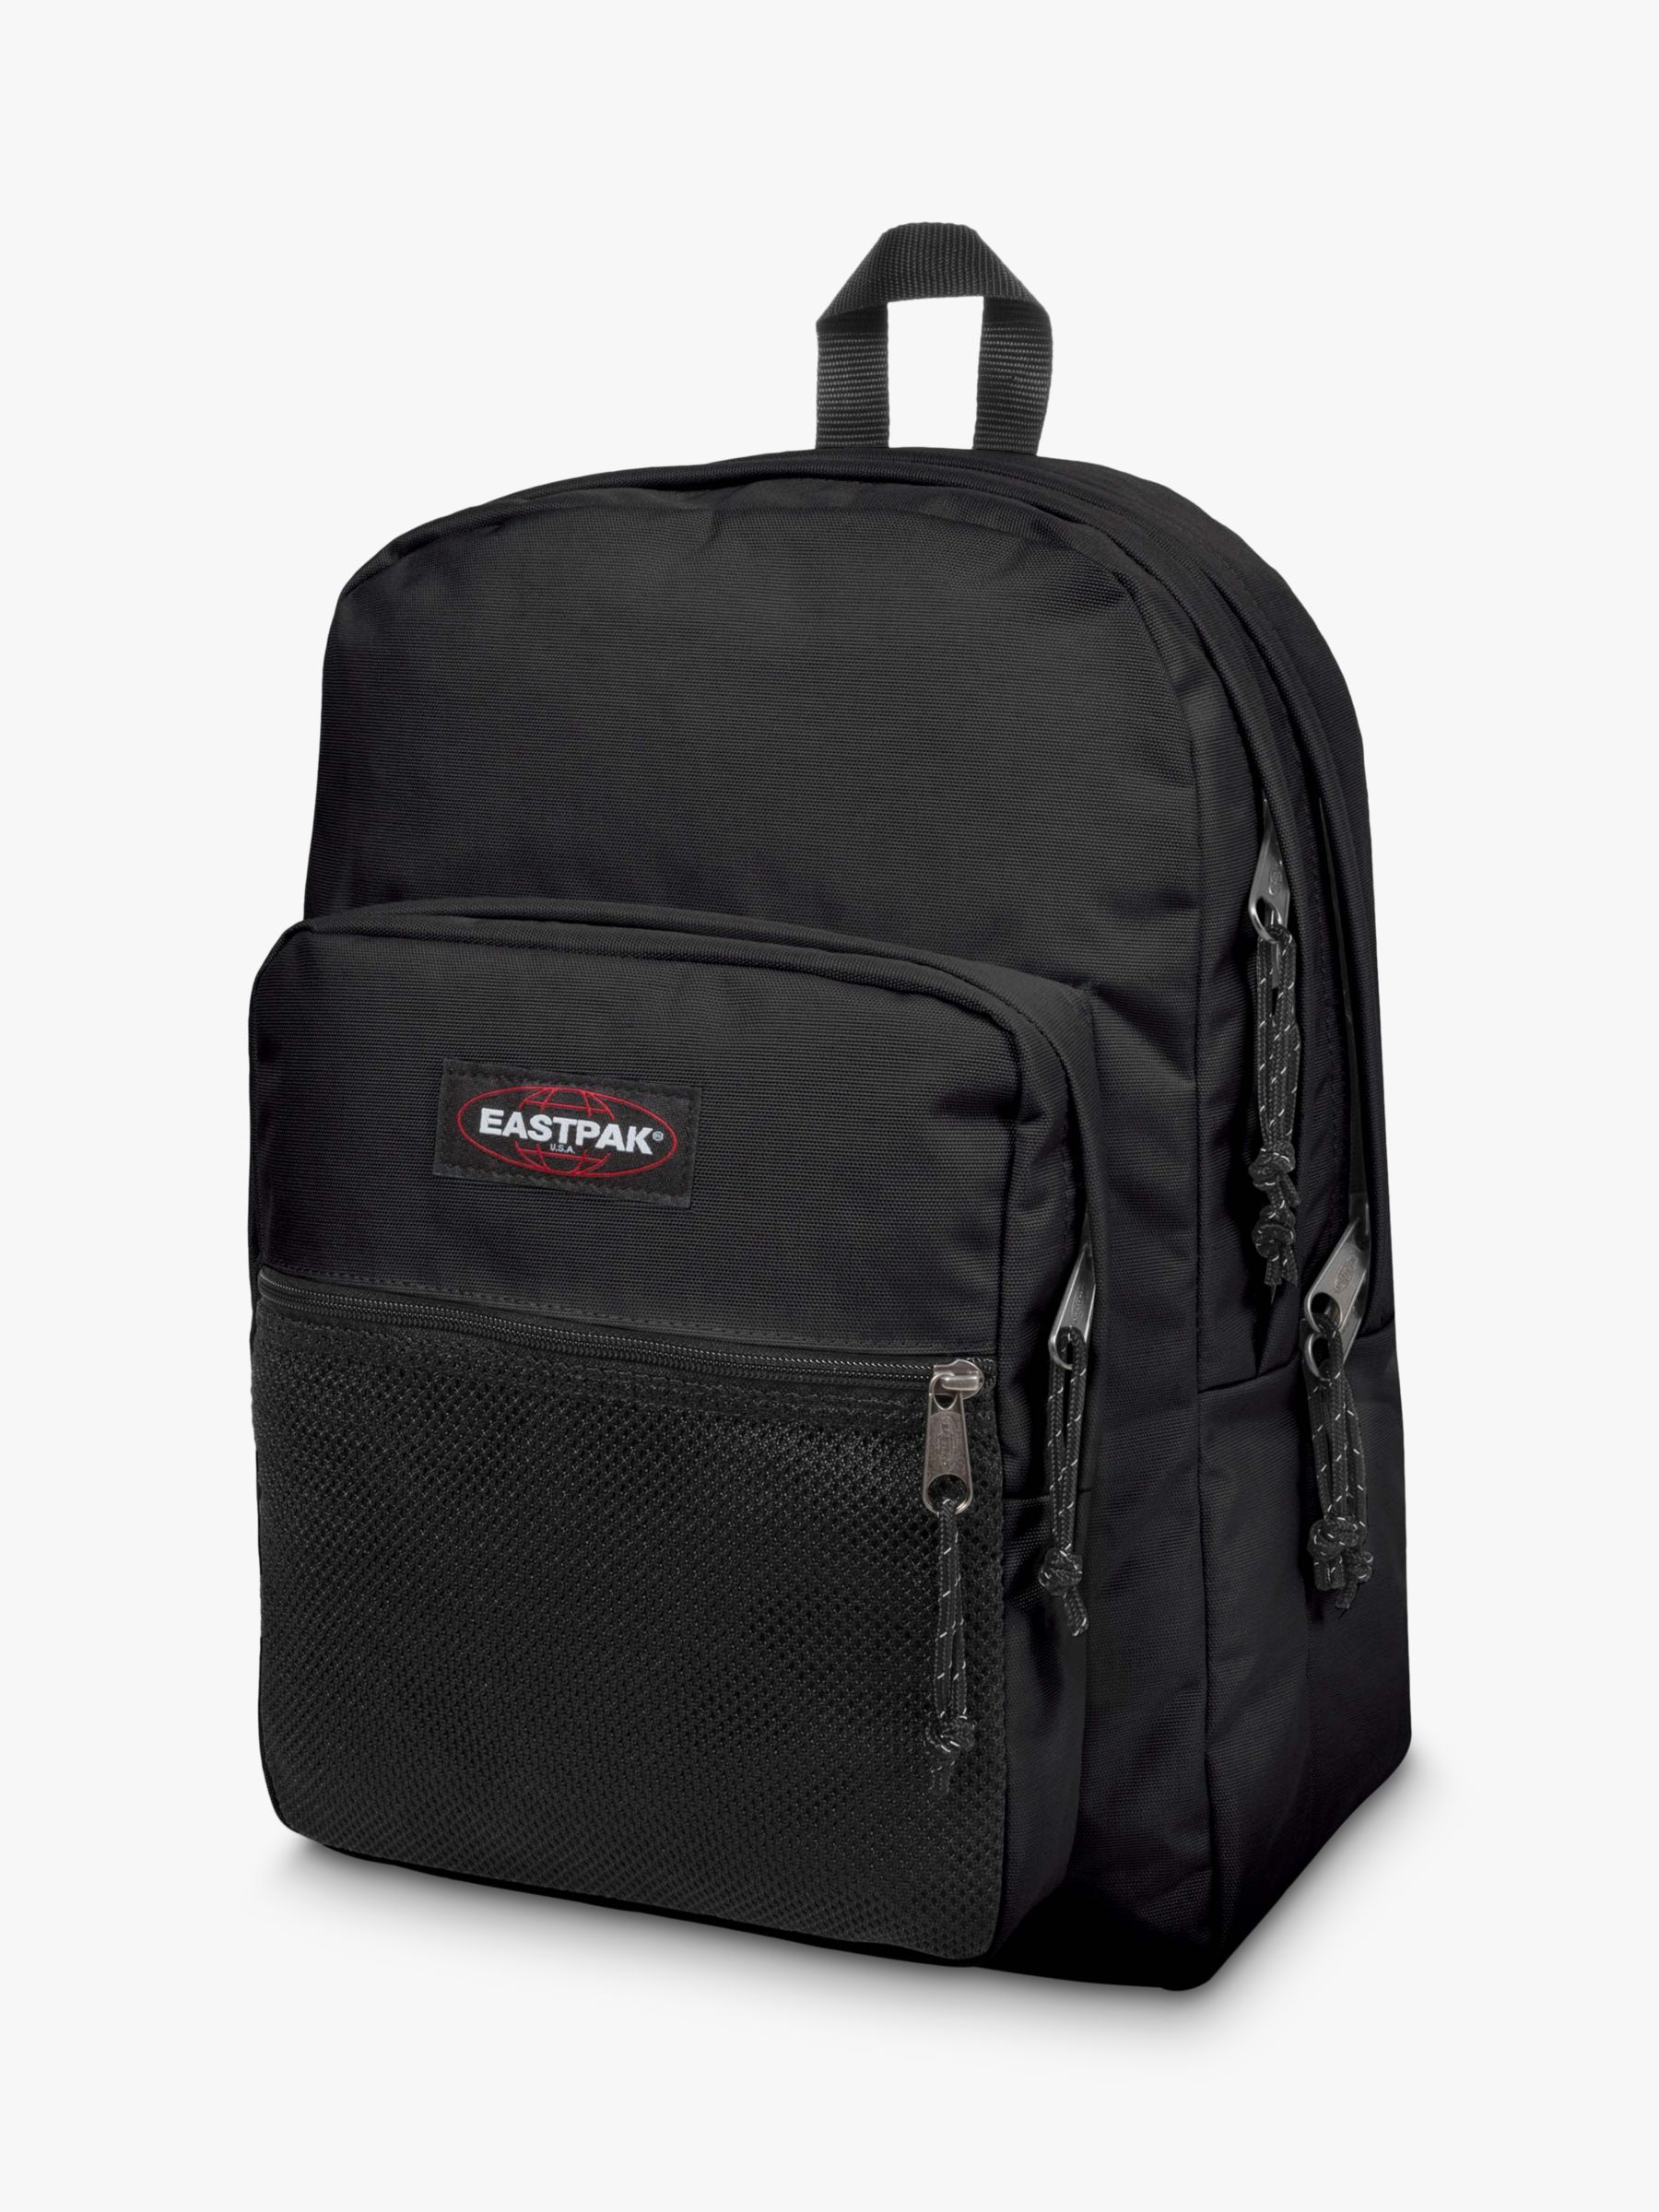 Eastpak Eastpak Pinnacle Backpack, Black